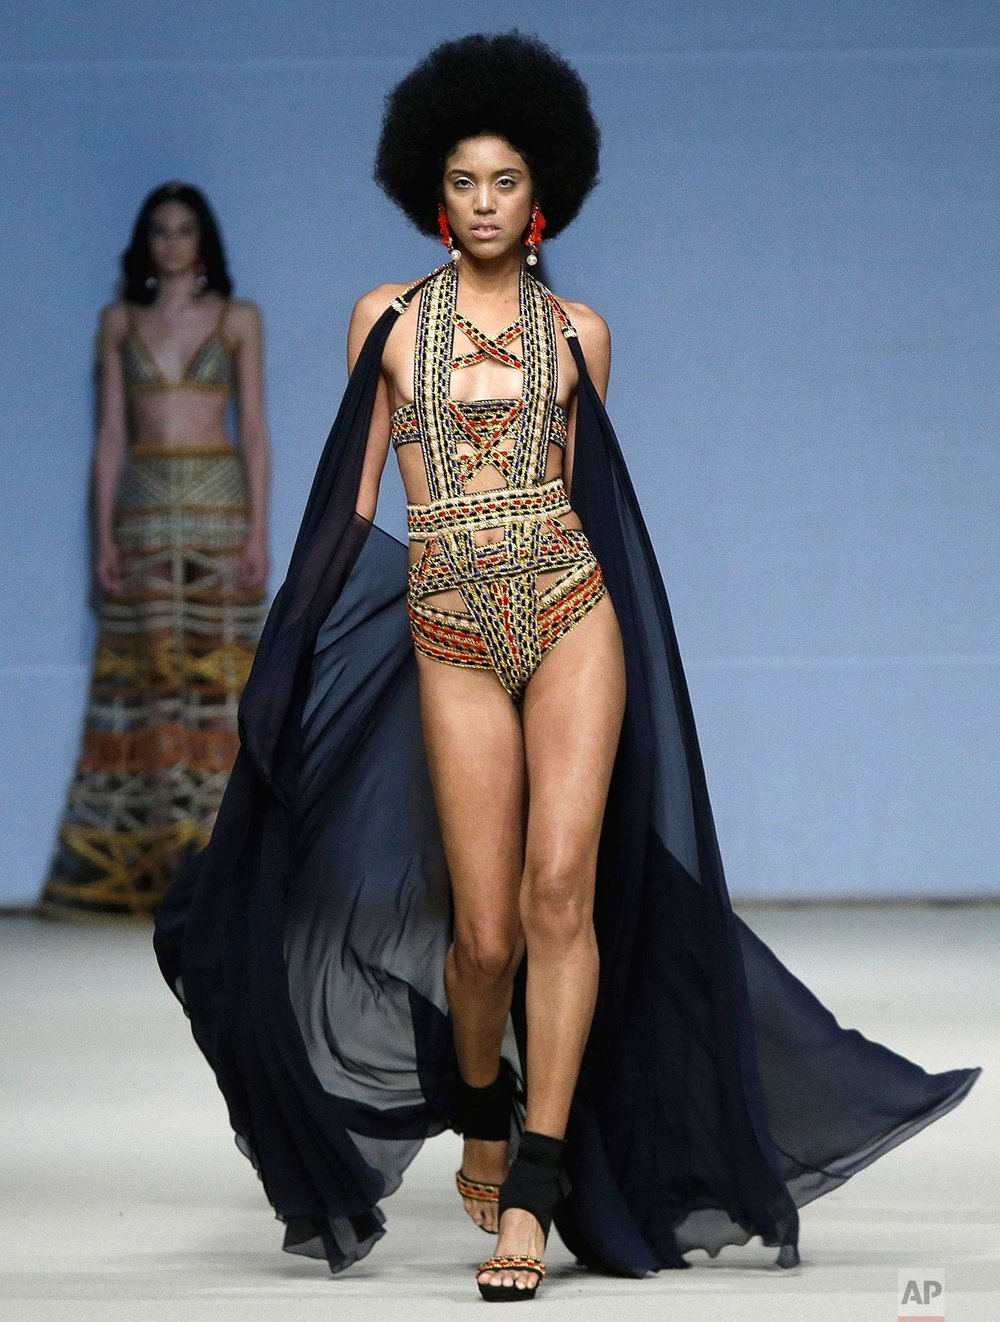 A model wears a creation from the Ani Alvarez Calderon spring/summer collection during Fashion Week in Lima, Peru, Thursday, Oct. 26, 2017. (AP Photo/Martin Mejia)